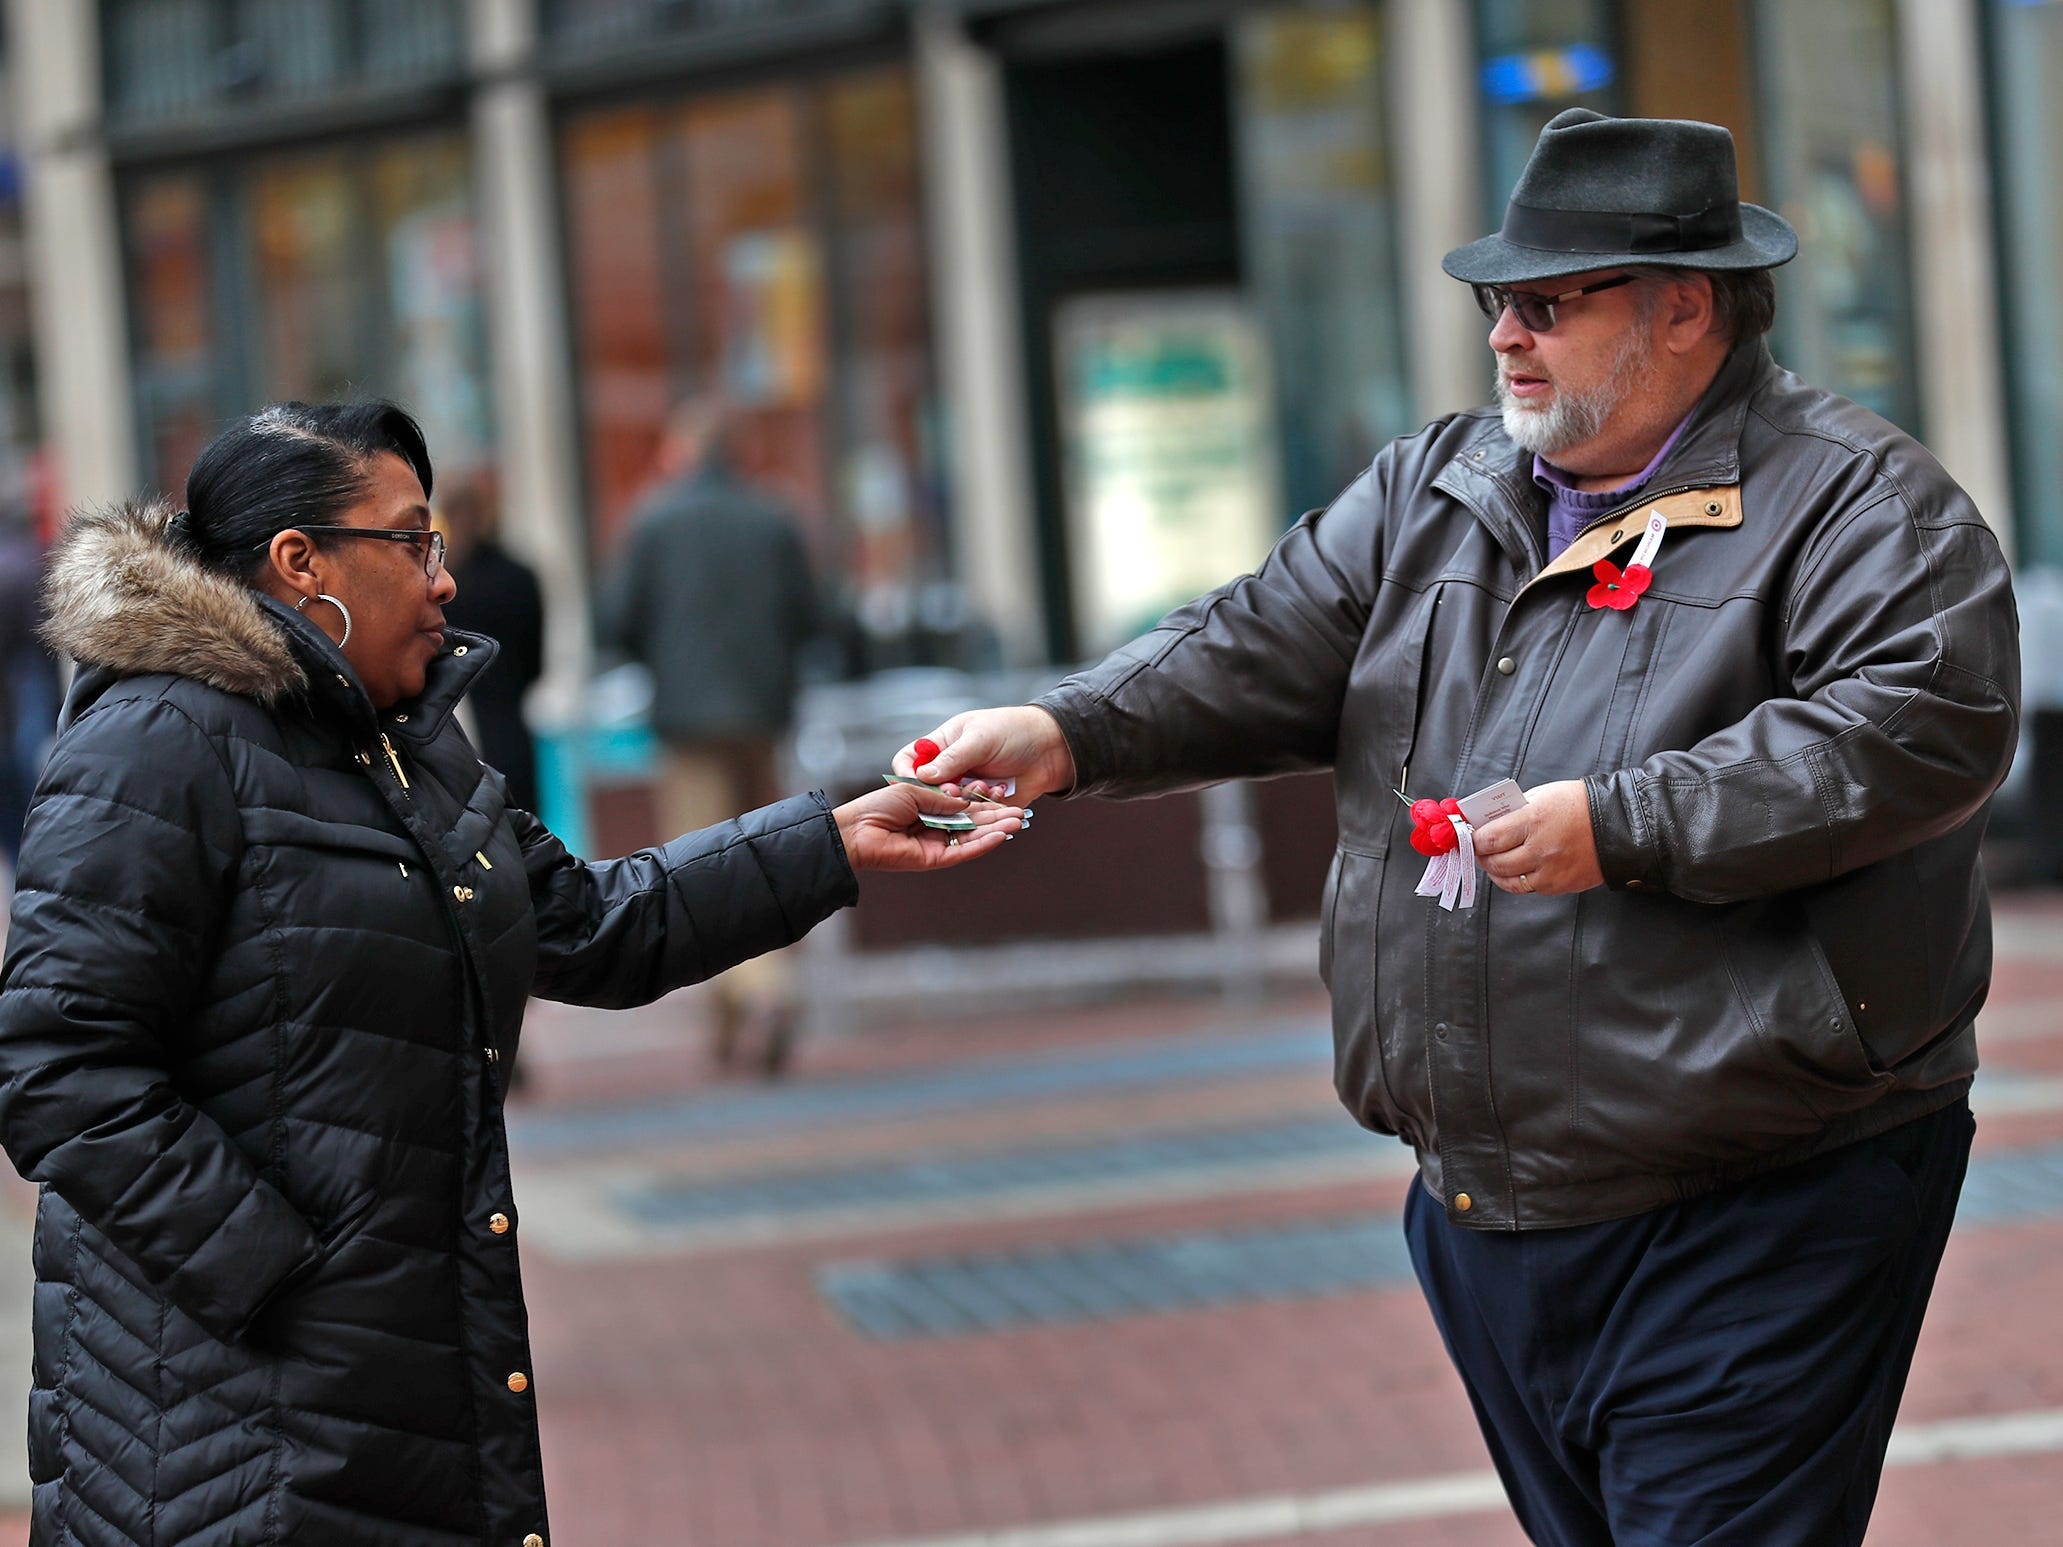 Michael Beason gives away free Remembrance Poppies from the Indiana War Memorials Foundation (IWMF) and Emmis Communications, on Monument Circle, Friday, Nov. 9, 2018.  The flower give-away is in celebration of Veterans Day and the 100th anniversary of the end of World War I.